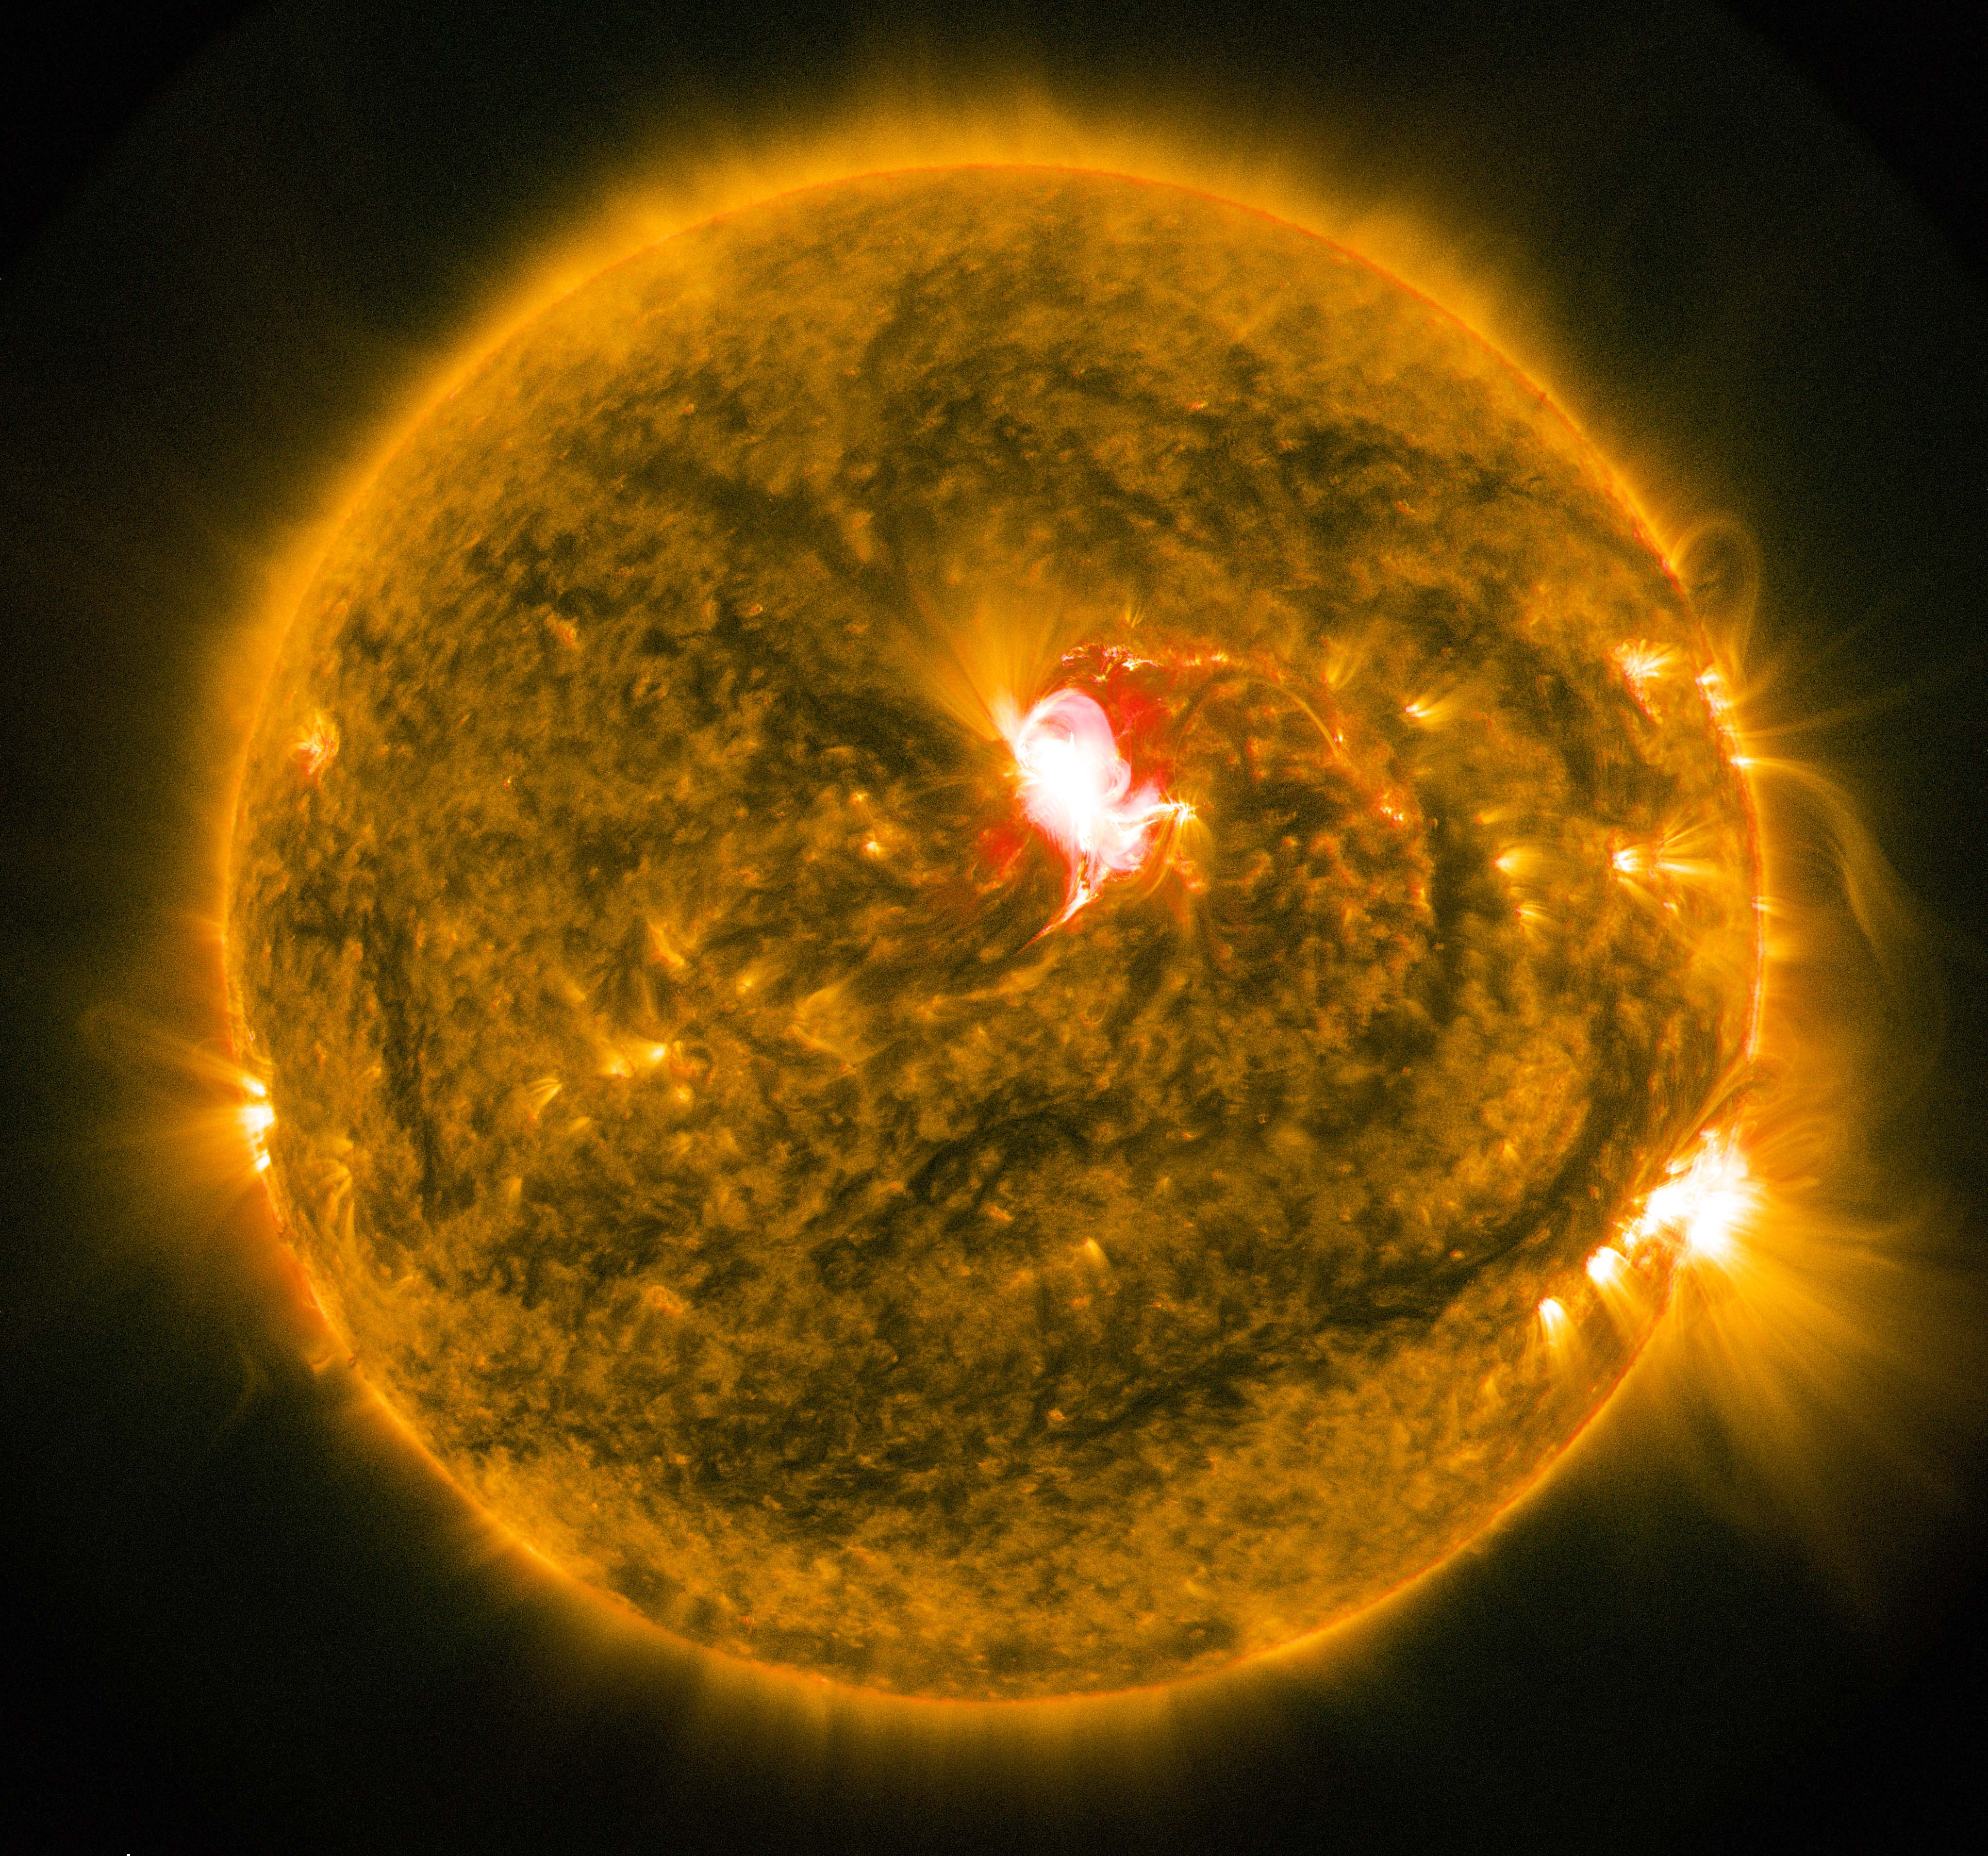 A solar flare observed in June 2015. Source: Author provided